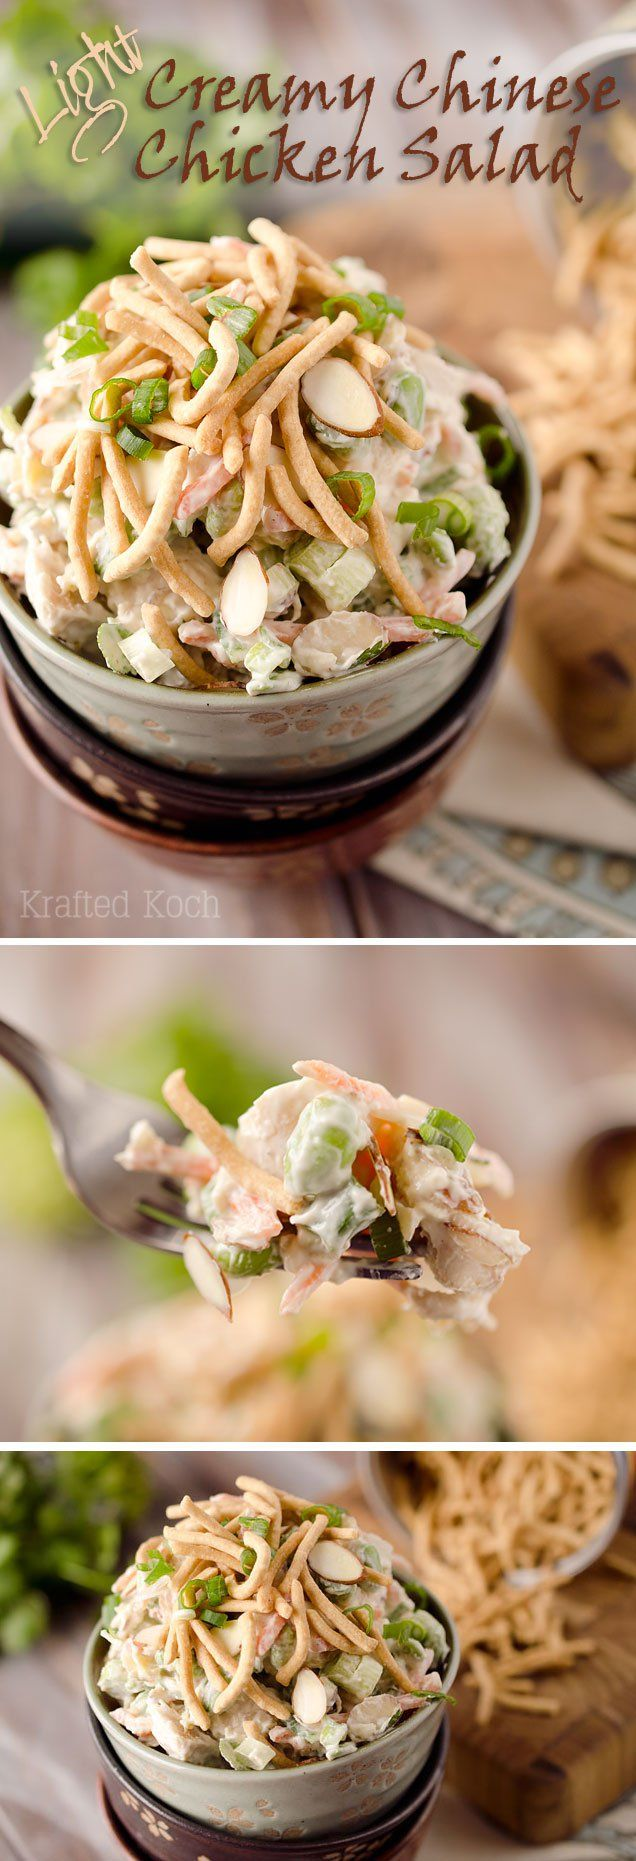 Light Creamy Chinese Chicken Salad - A quick and simple lunch recipe made with Greek yogurt for a healthy meal you will love!